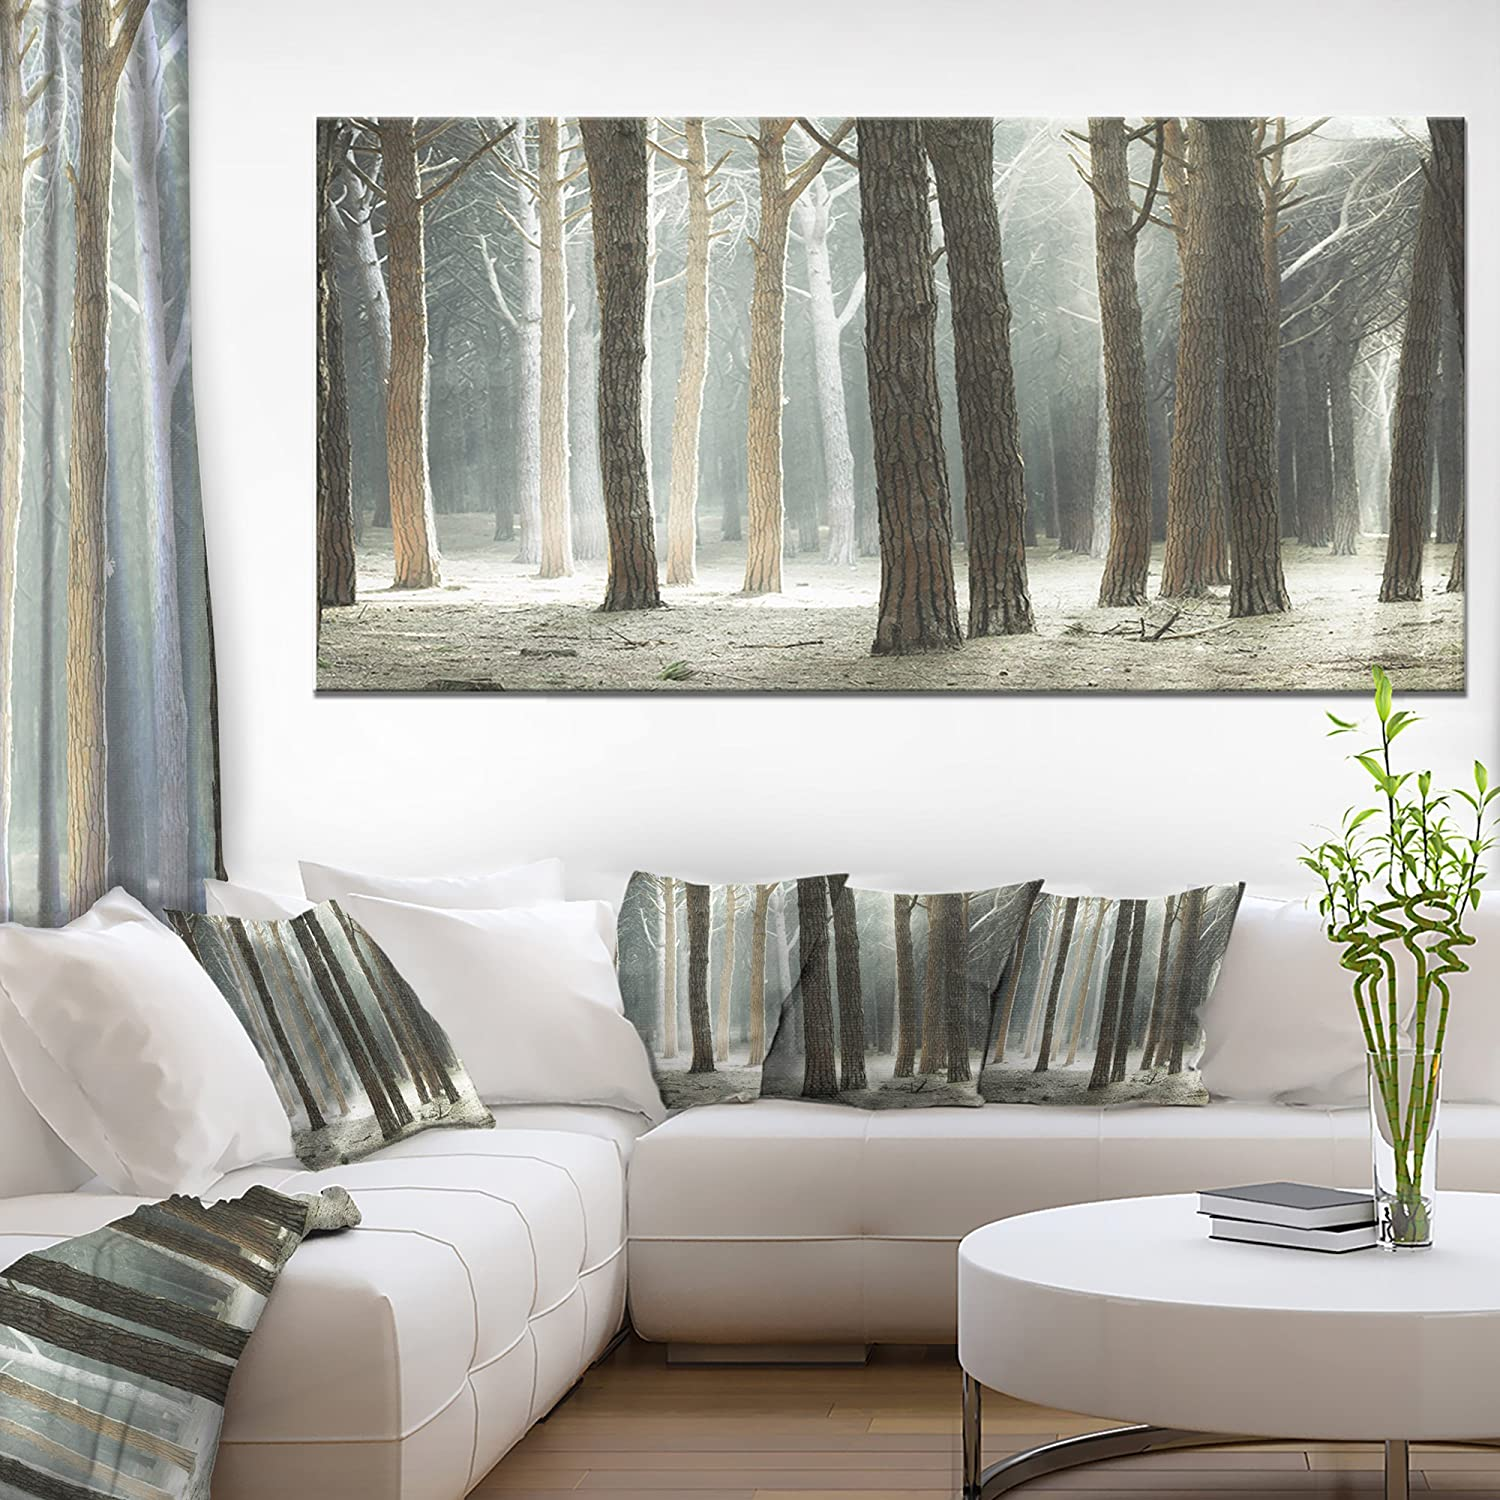 Design Art 1 Piece Maritime Pine Tree Forest With Rays Oversized Forest Canvas Art 60x28 Amazon In Home Kitchen